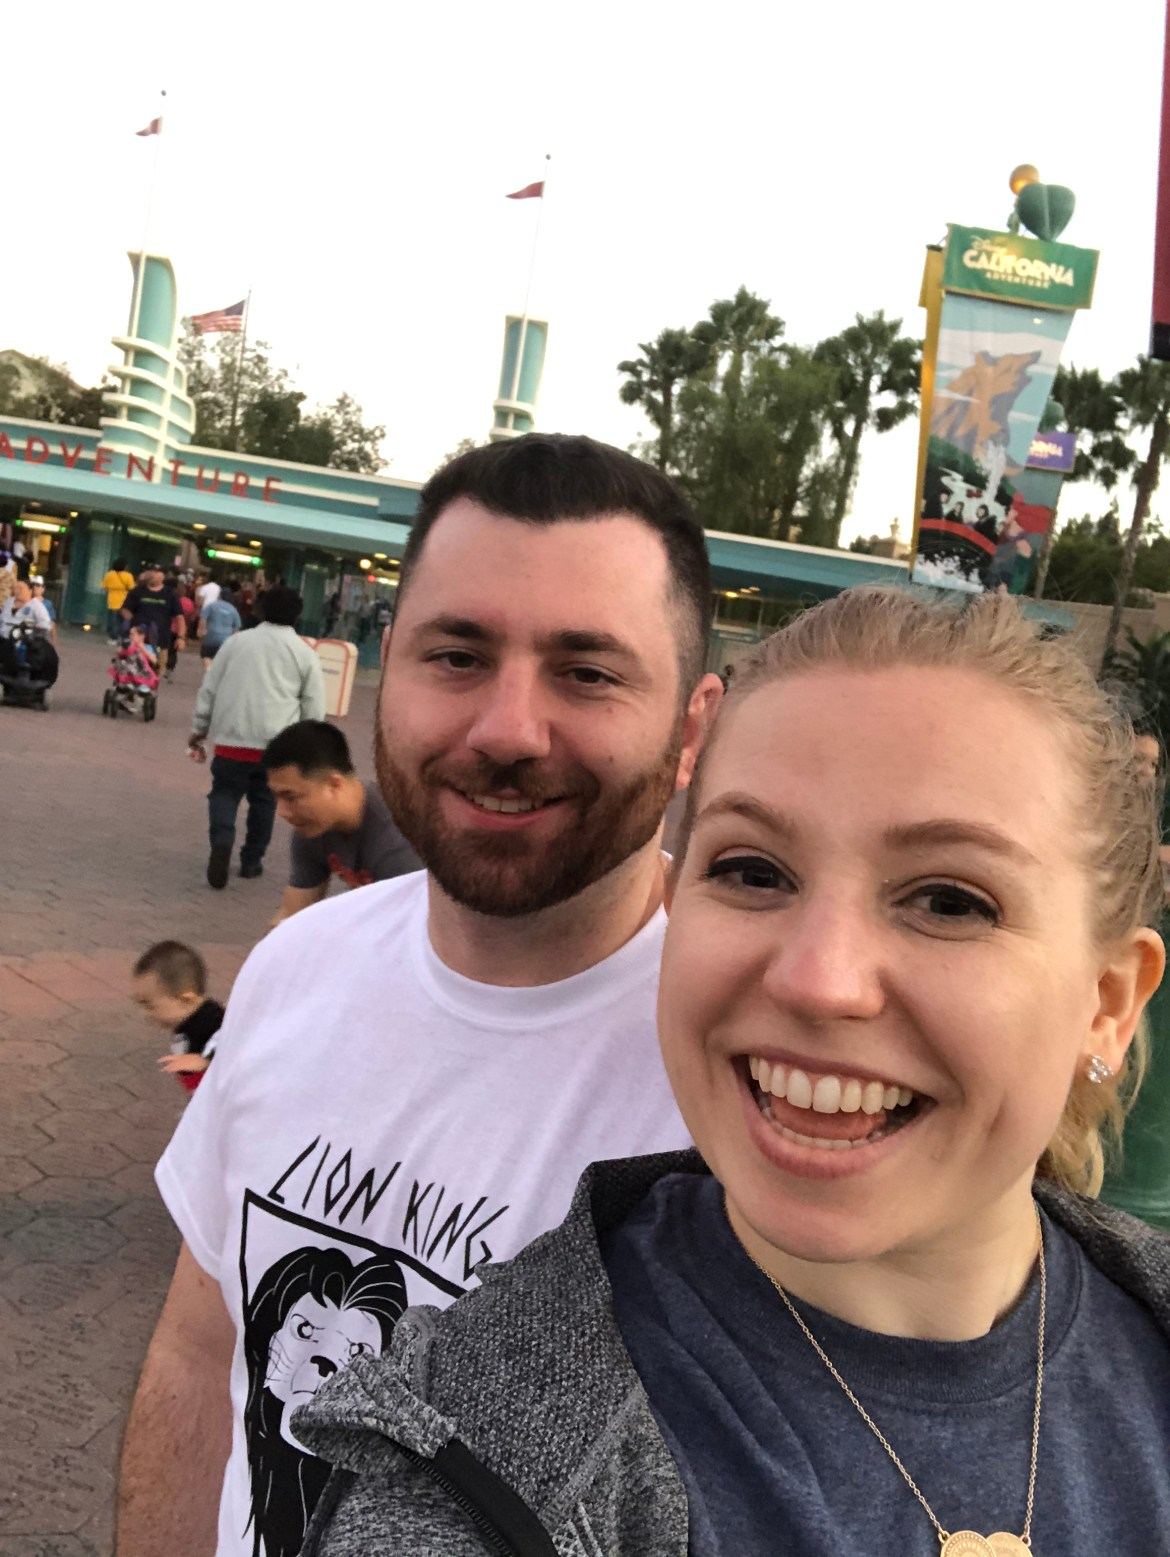 Find out where to stay in Anaheim, California when visiting Disneyland or the D23 Expo.